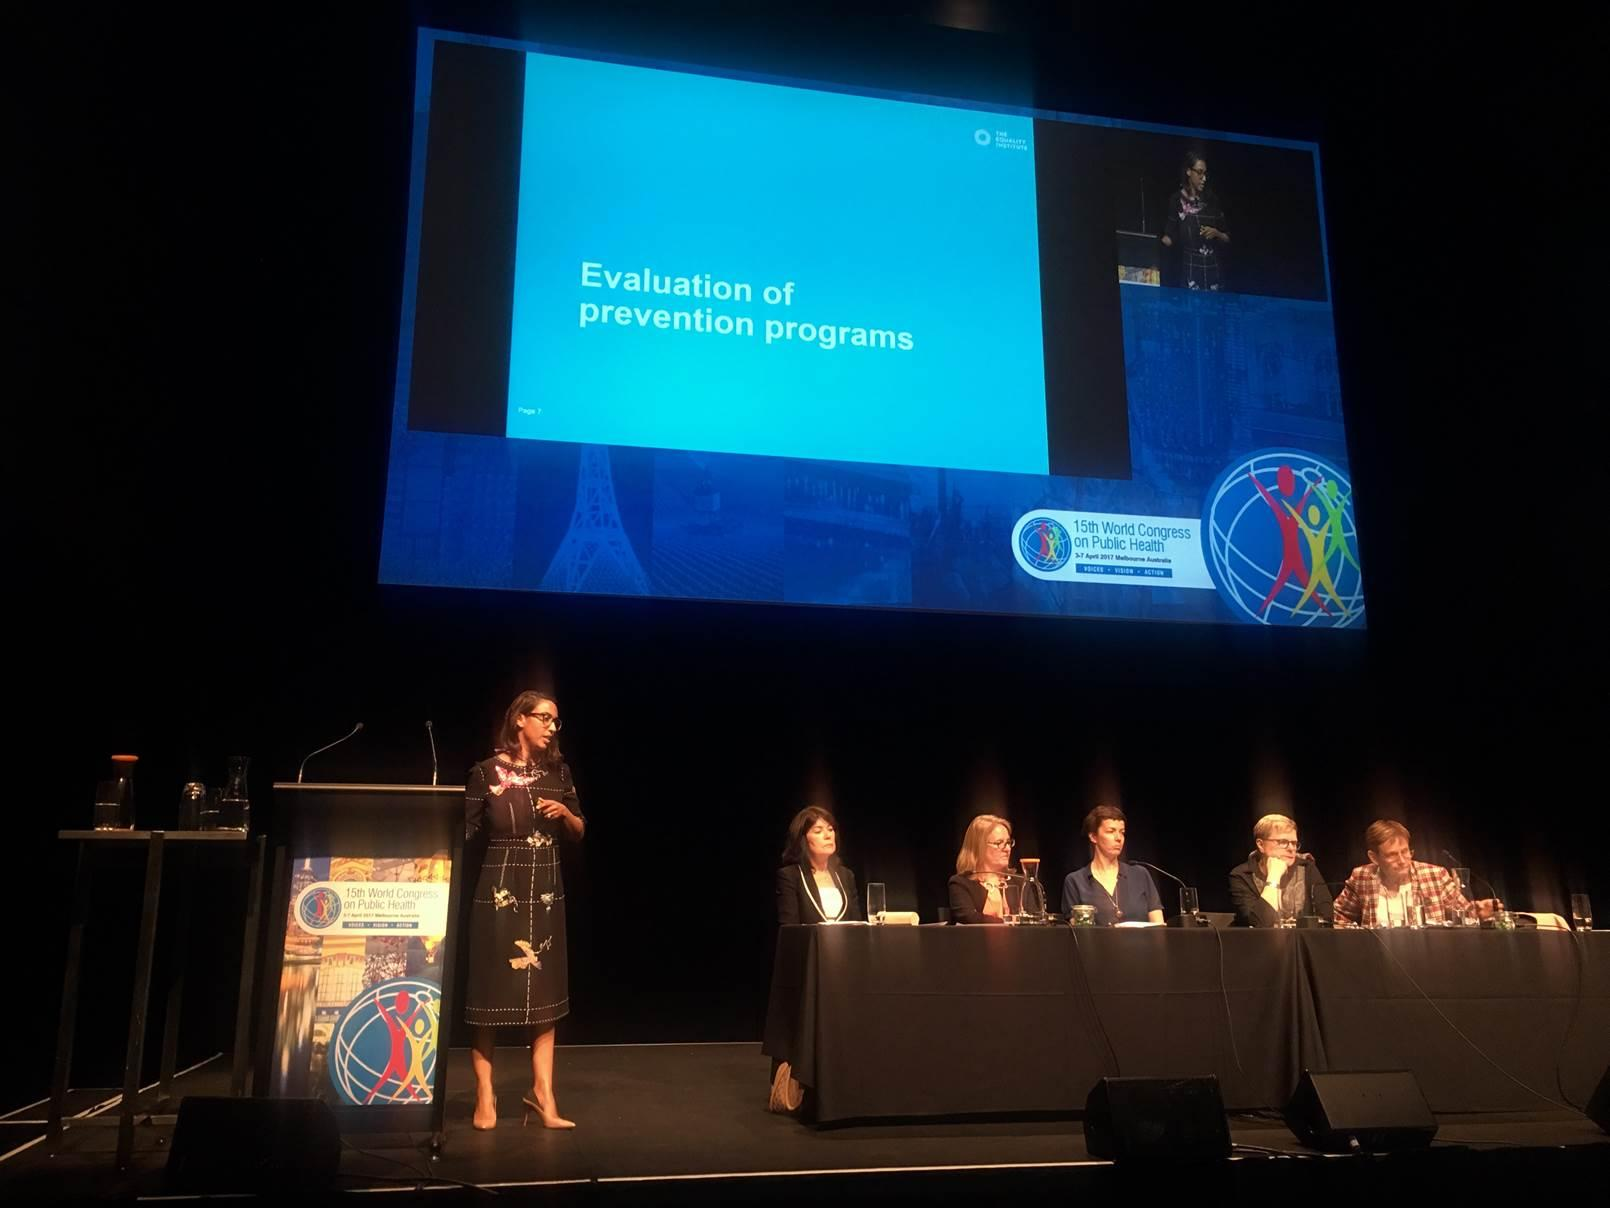 Dr Emma Fulu speaking at the 15th World Congress on Public Health.  Photo by Jane Torney, OurWatch